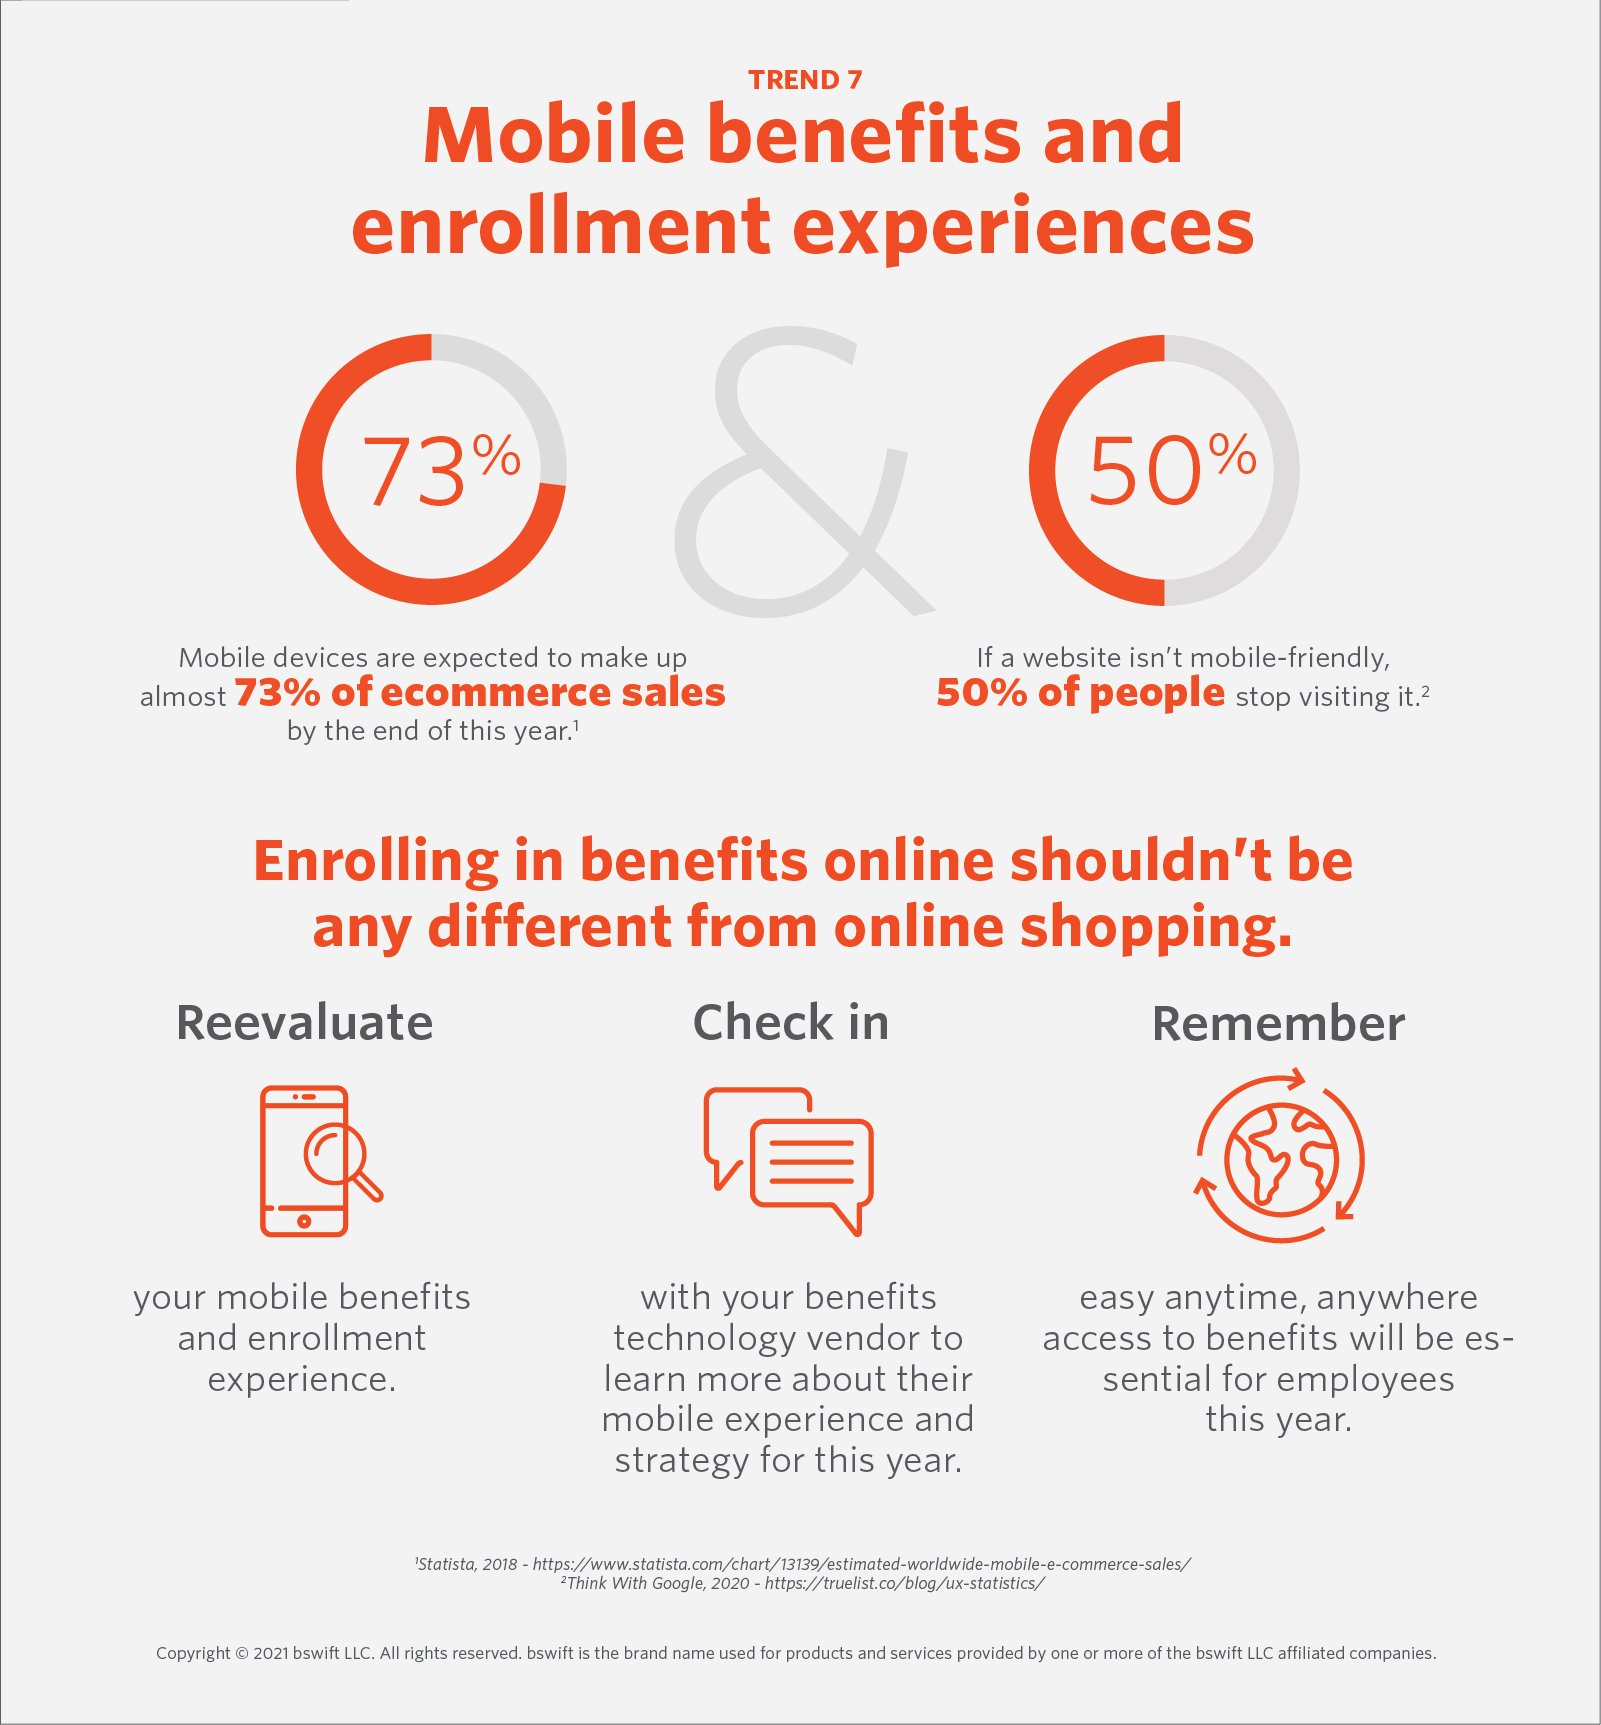 Trend 7 - Mobile benefits and enrollment experiences